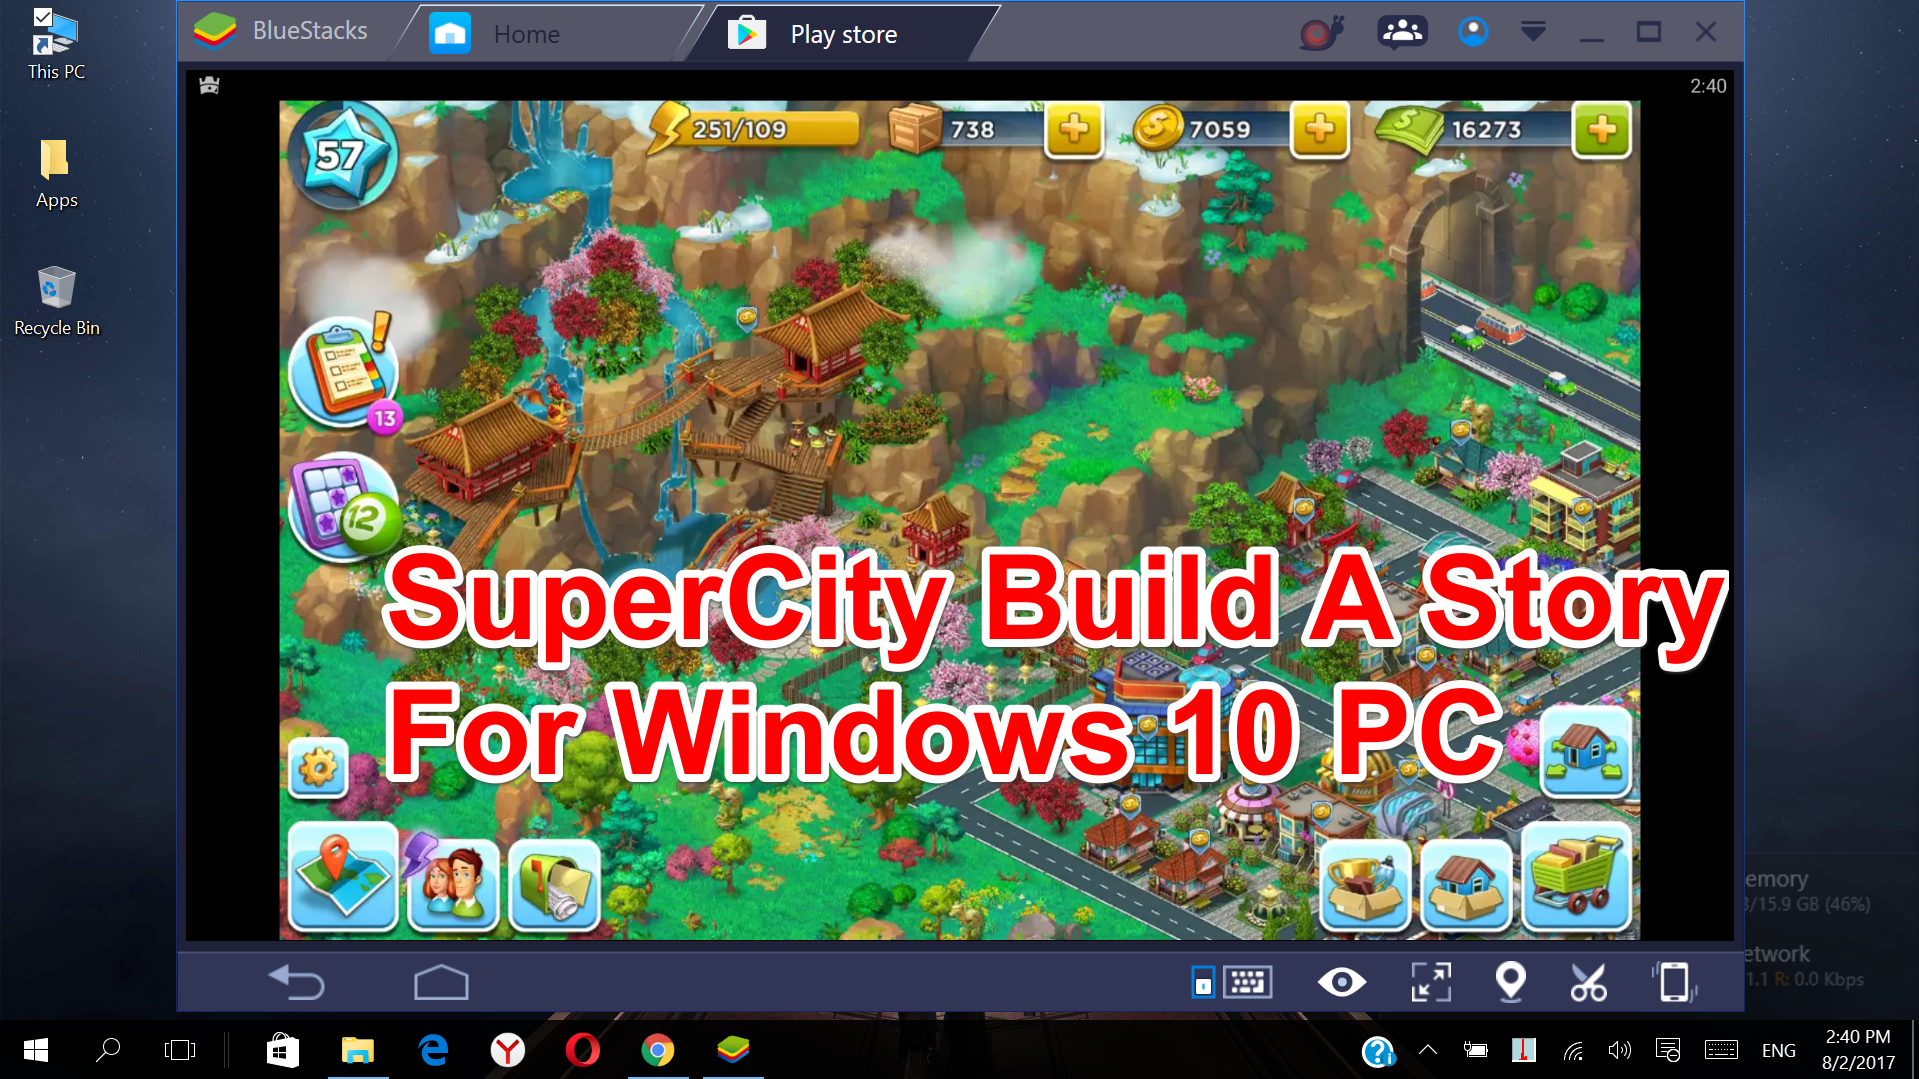 Supercity-Buid-a-story-for-Windows-10-pc